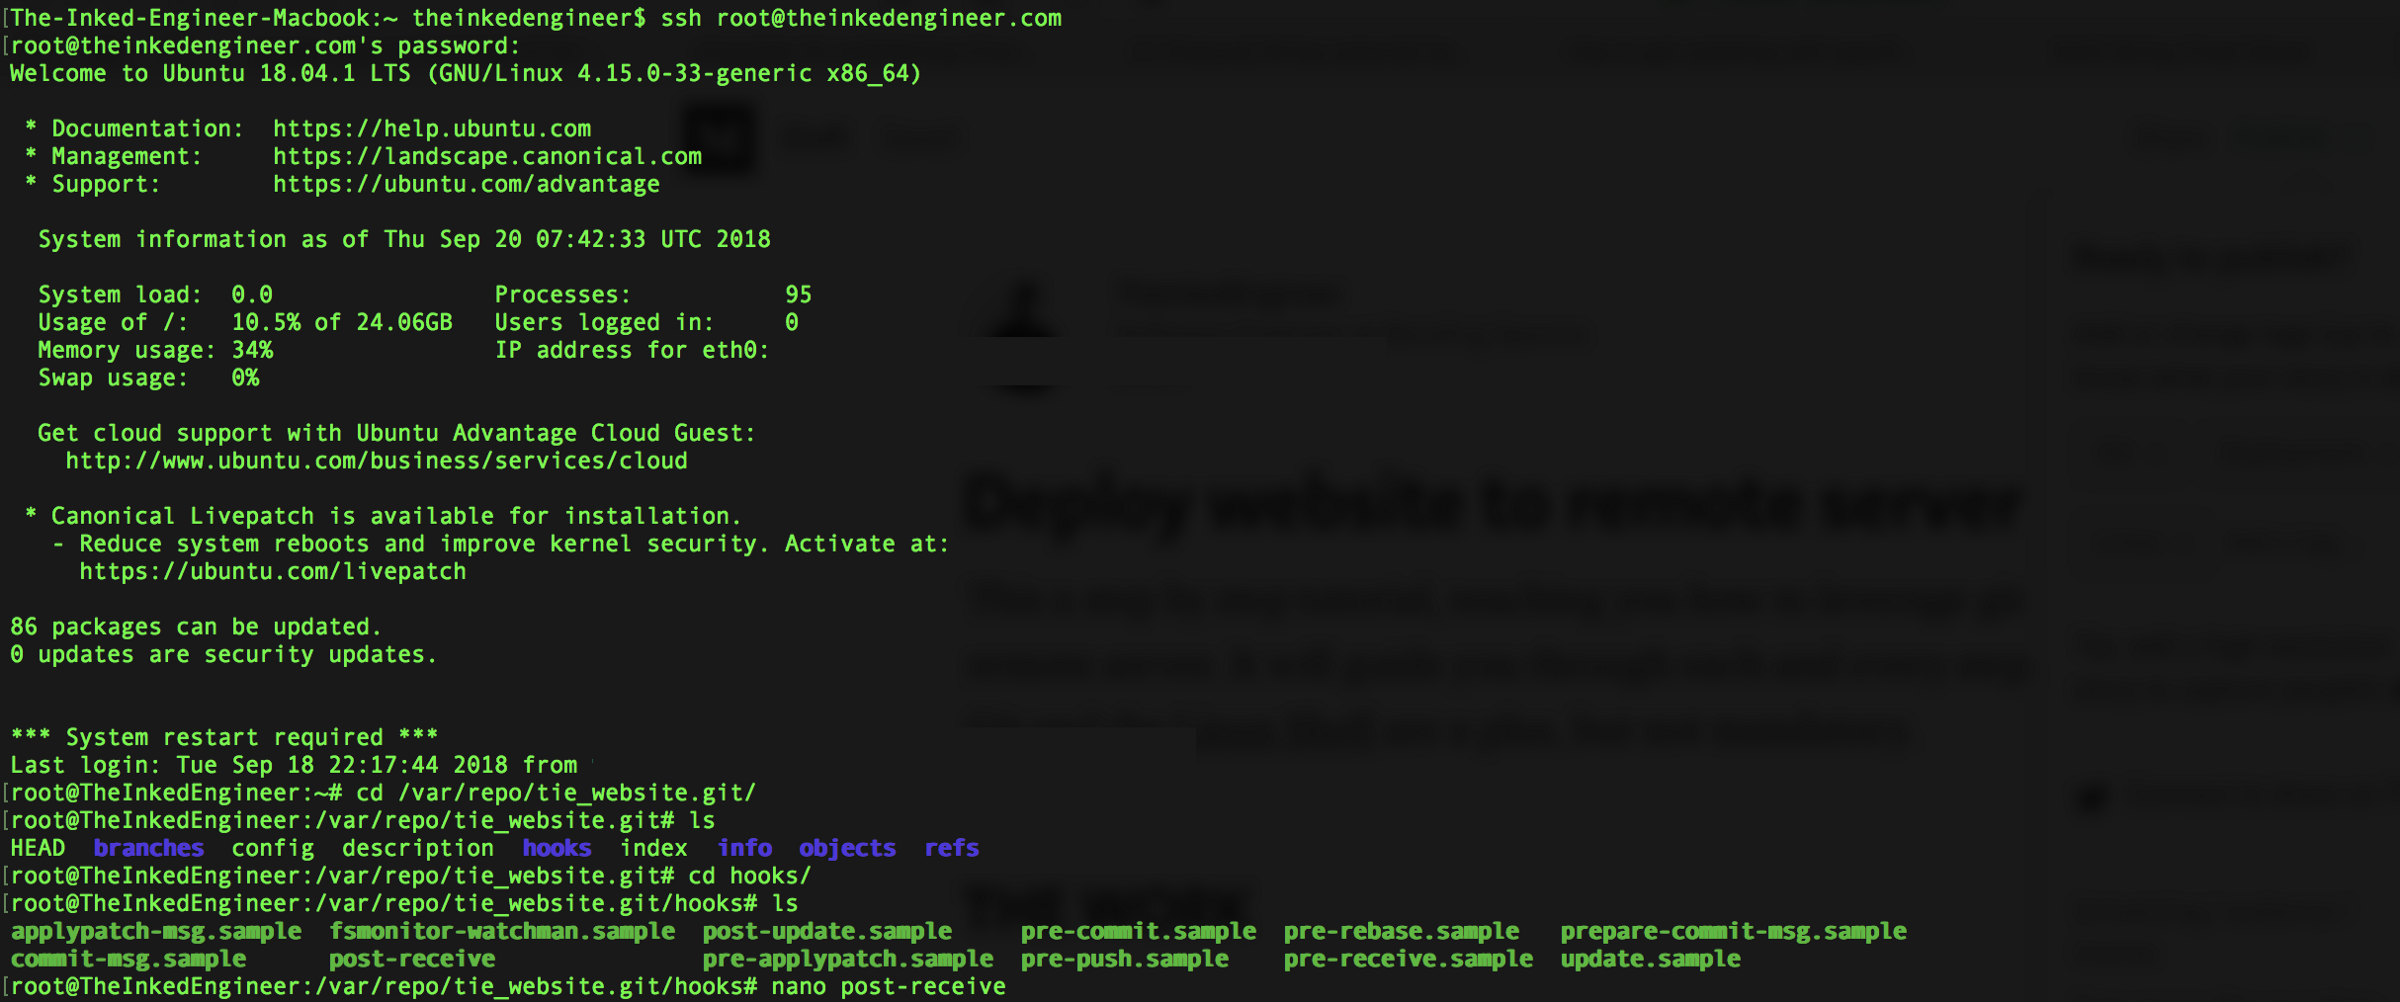 How to Deploy a Website to a Remote Server Using GIT - By